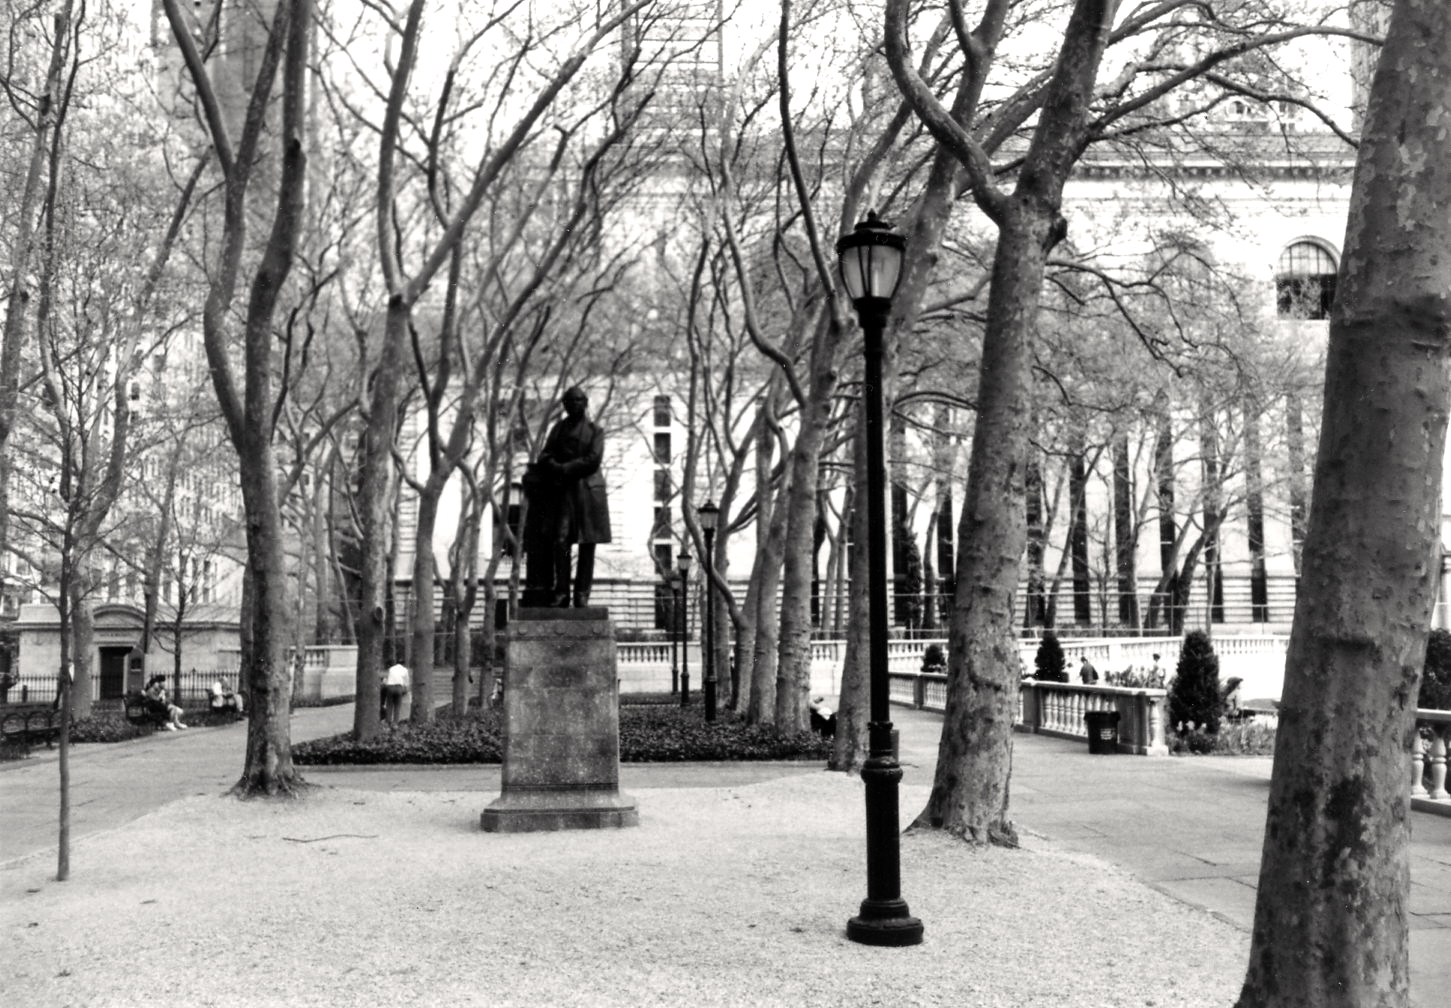 Bryant Park. From the NYC Street Series. By Paul Goldfinger